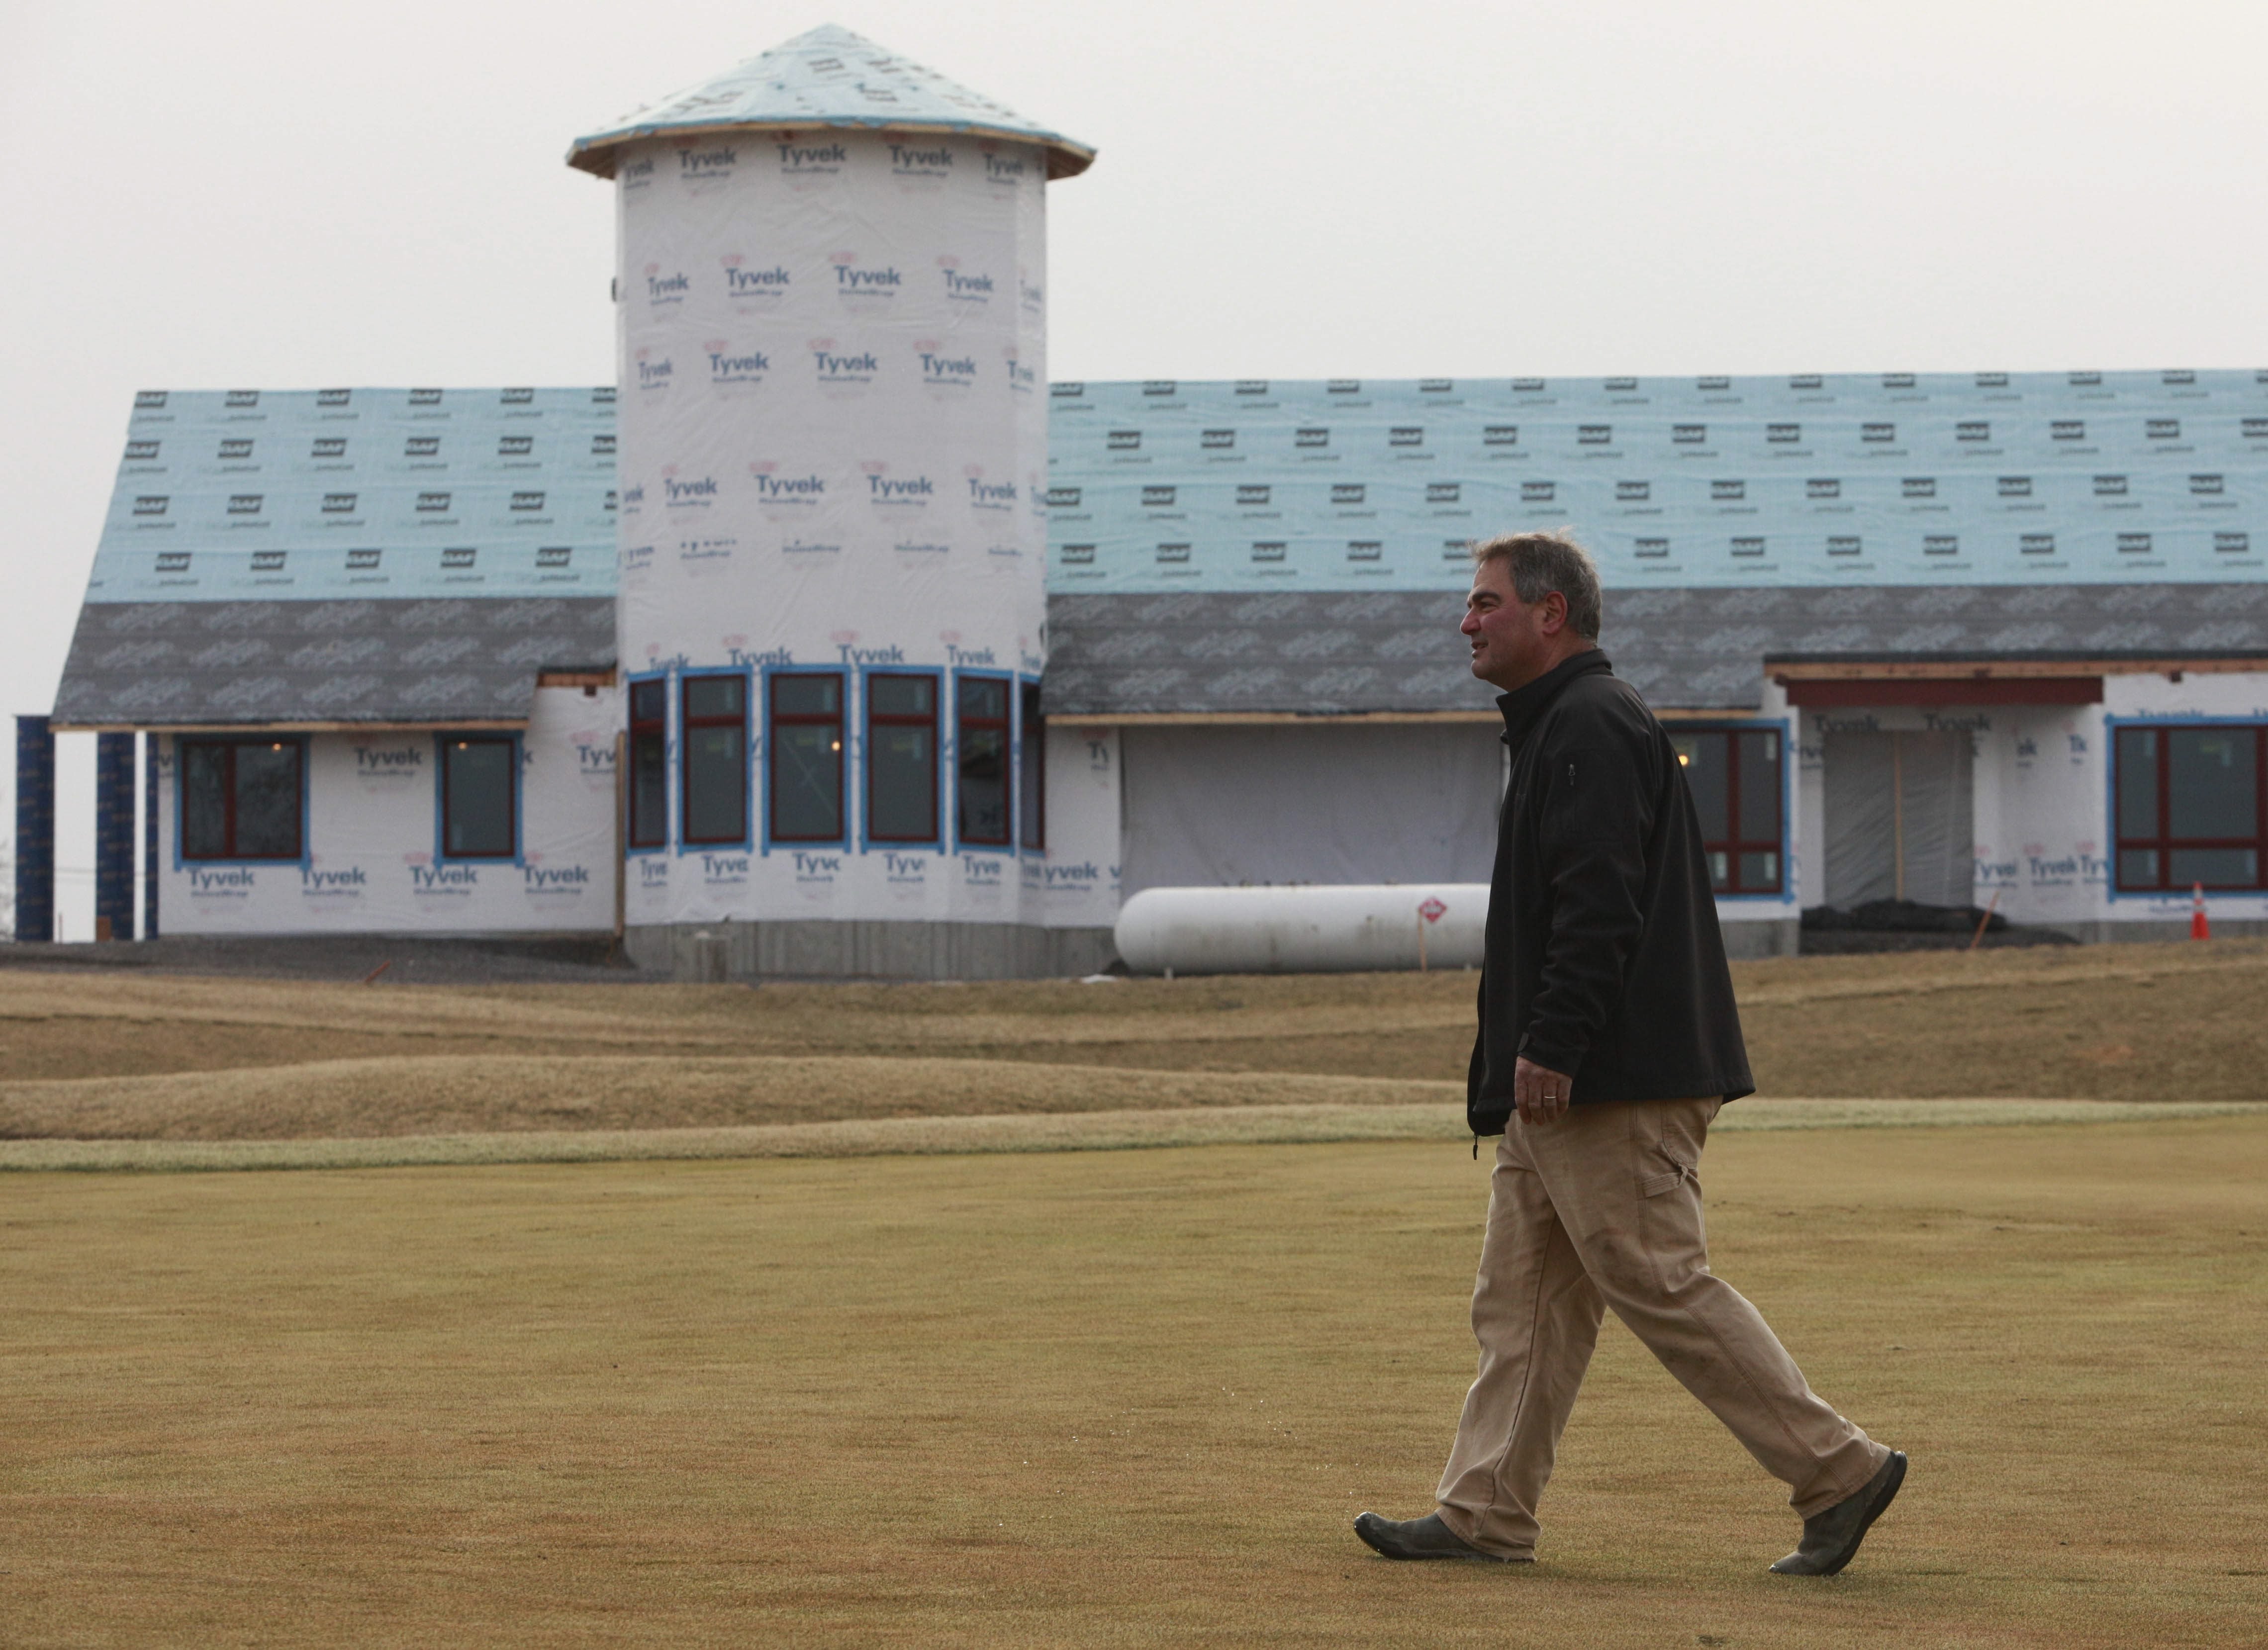 Attorney Ross Cellino, who bought the Harvest Hill Golf Course in Orchard Park last fall, walks across the approach to the 18th green. The new clubhouse – designed to evoke a barn with a silo – is under construction in the background.